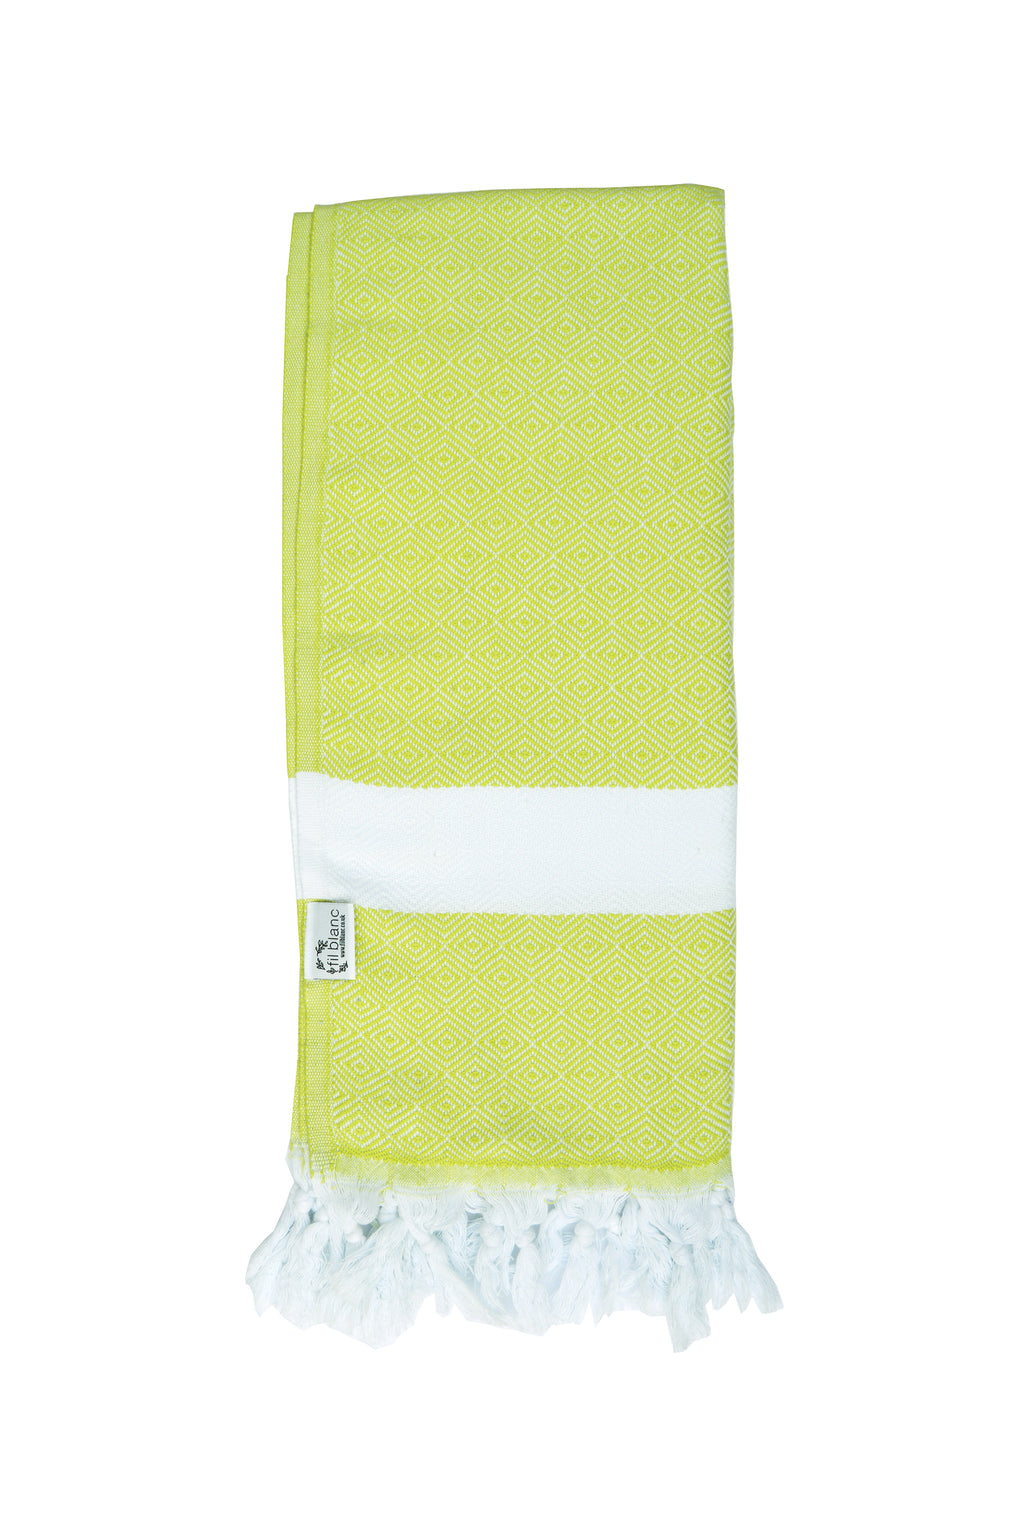 Reef Hammam Towel - Green